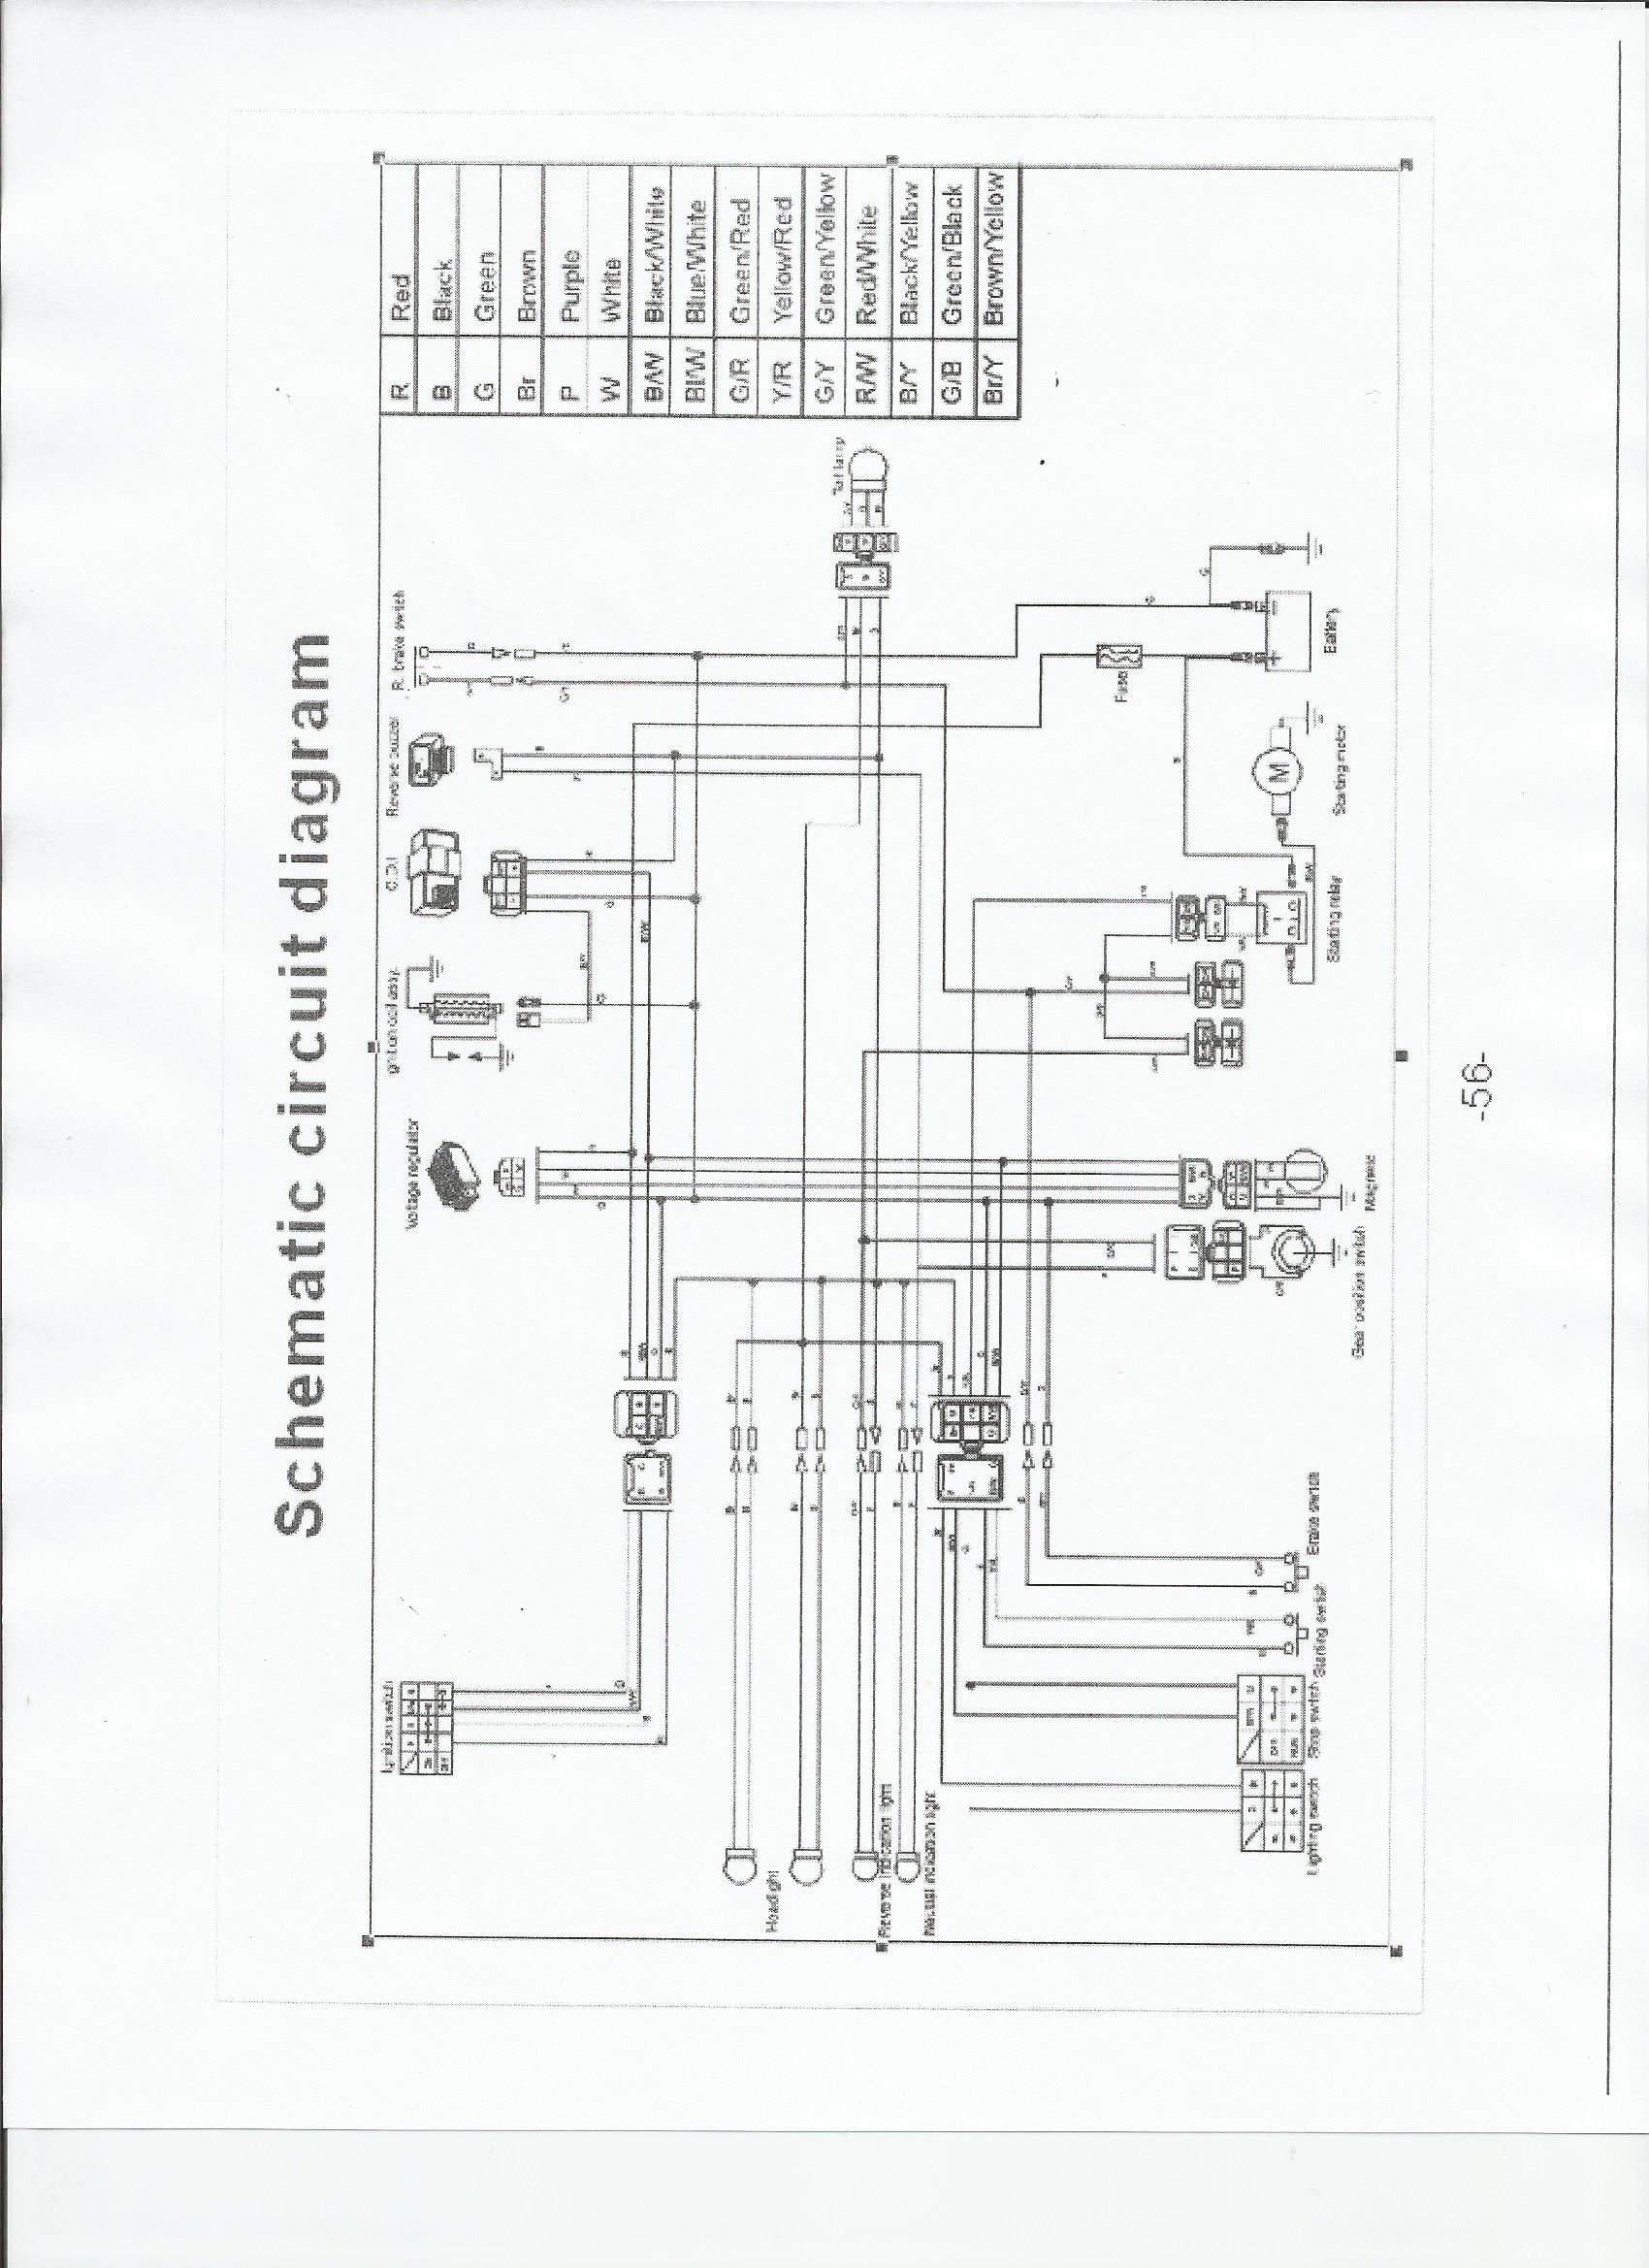 tao tao wiring schematic taotao mini and youth atv wiring schematic familygokarts support  at mifinder.co